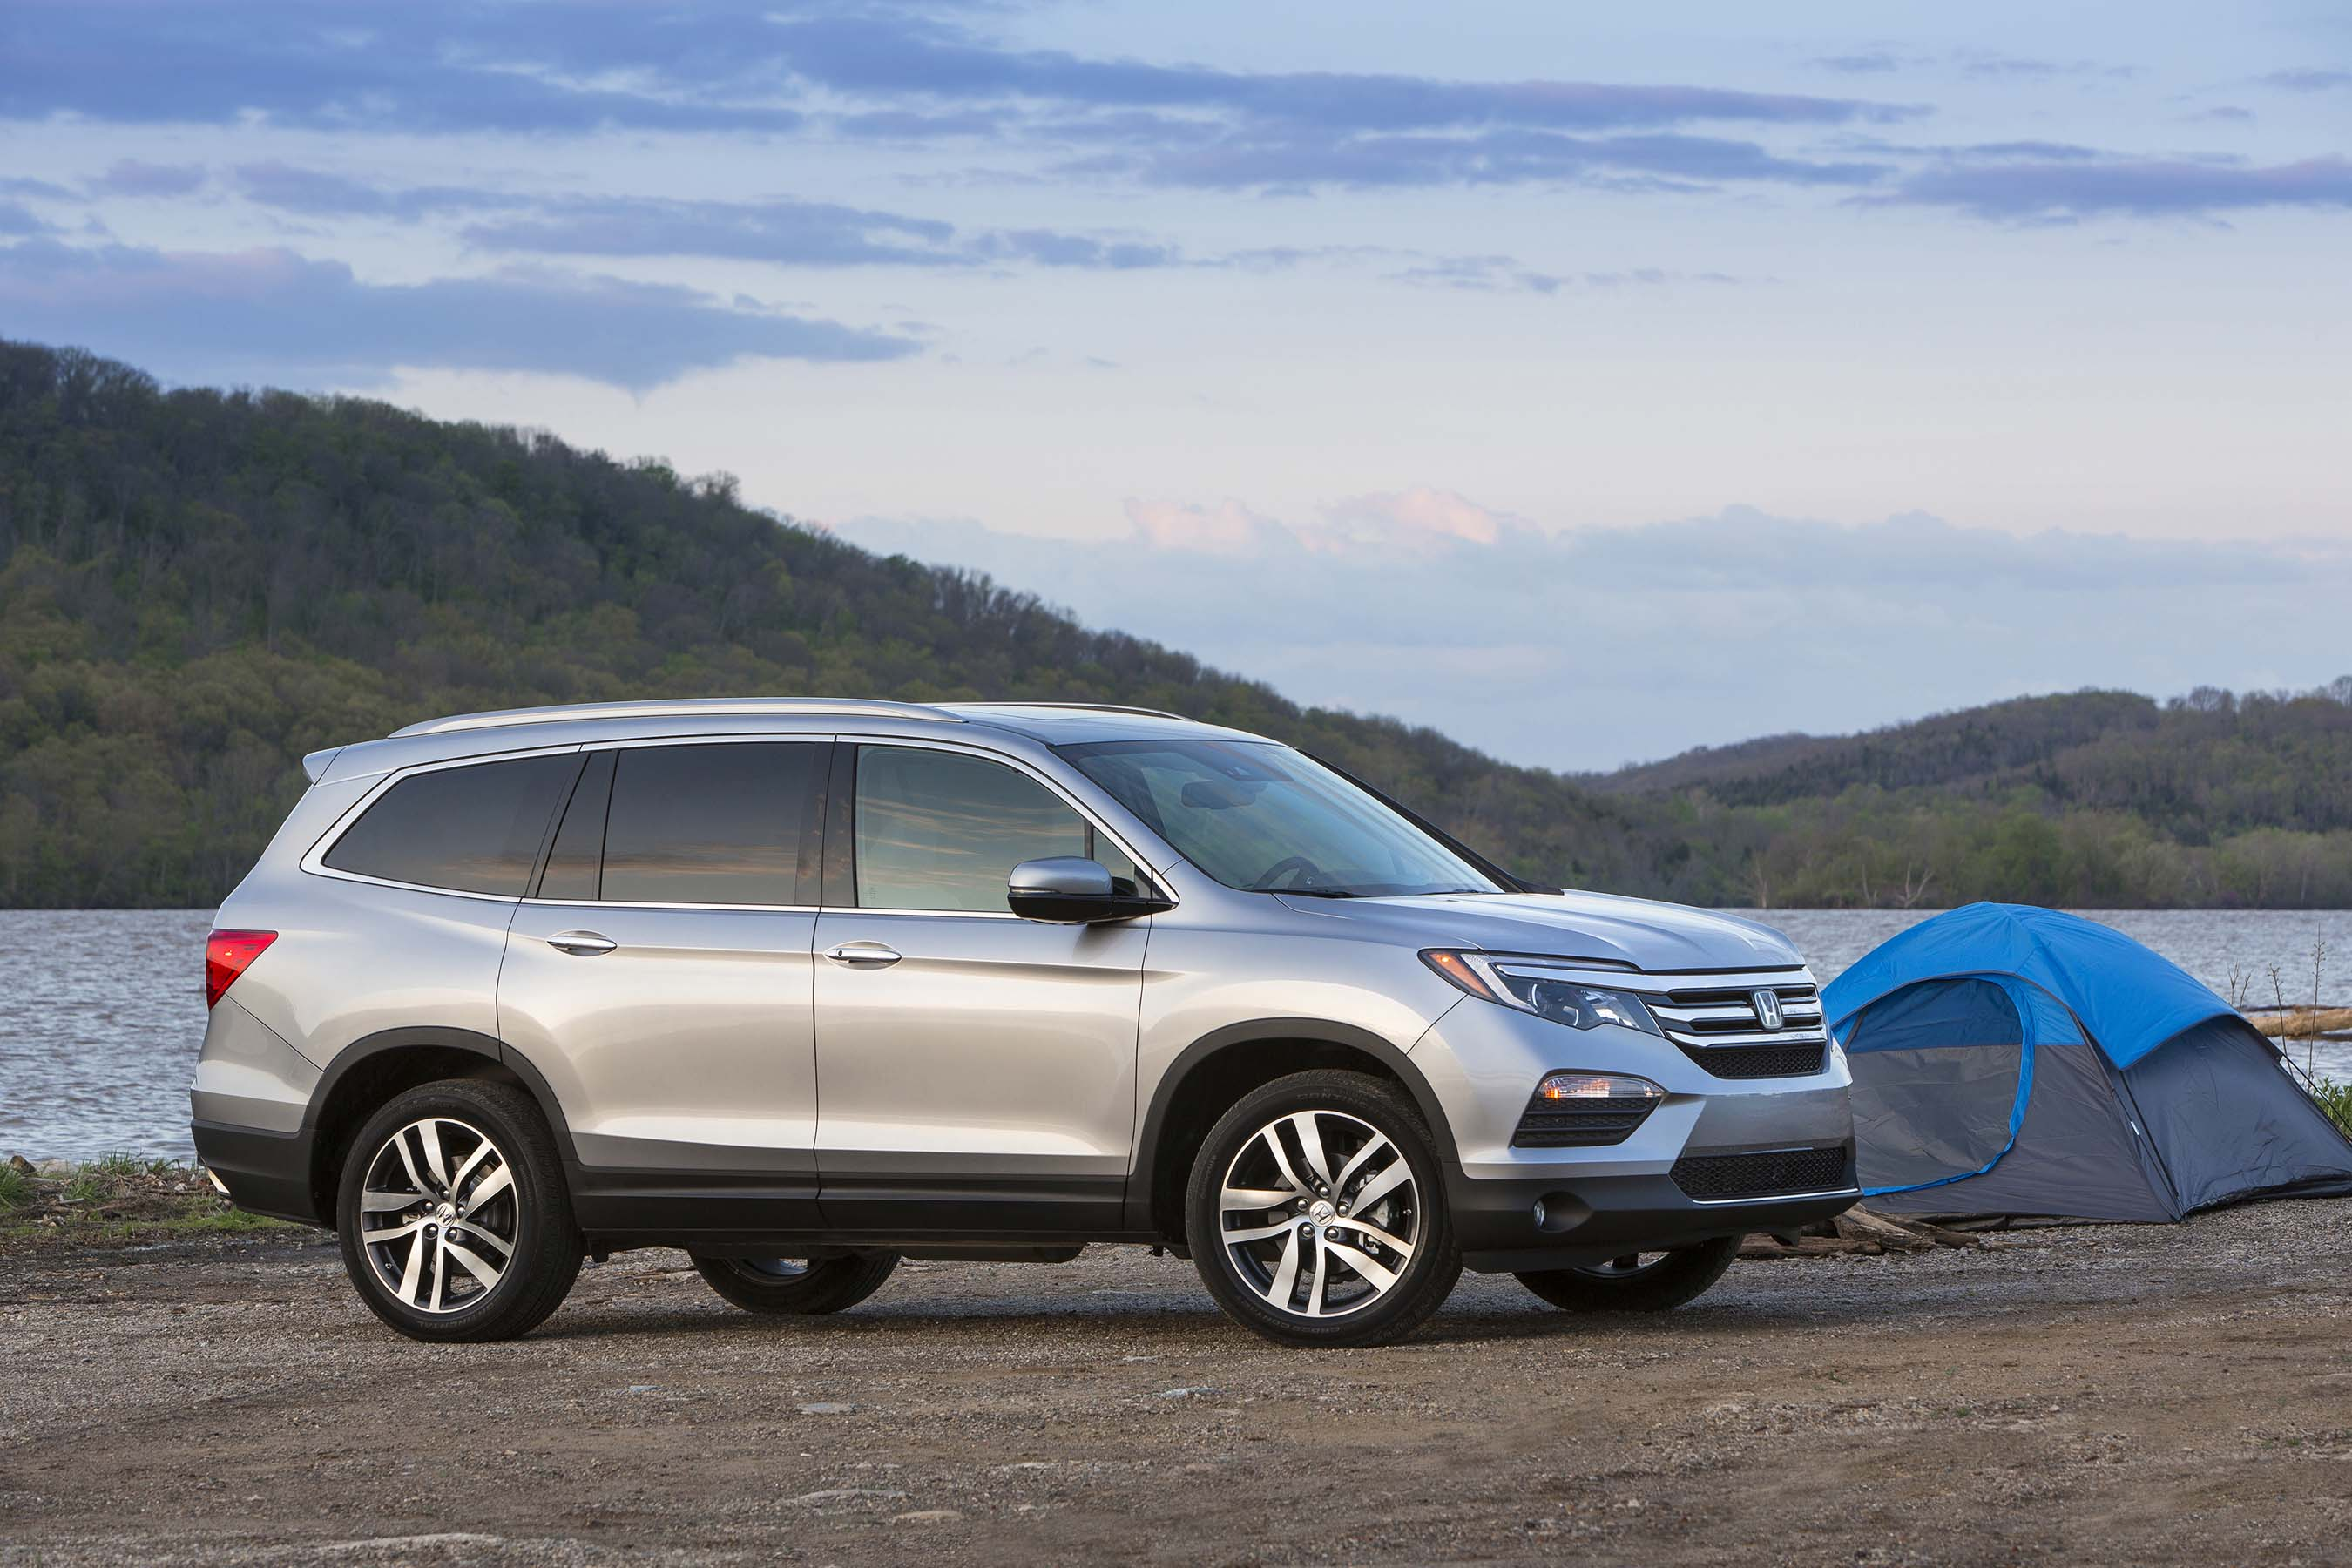 Kbb com 16 best family car the totally redesigned 2016 honda pilot is the